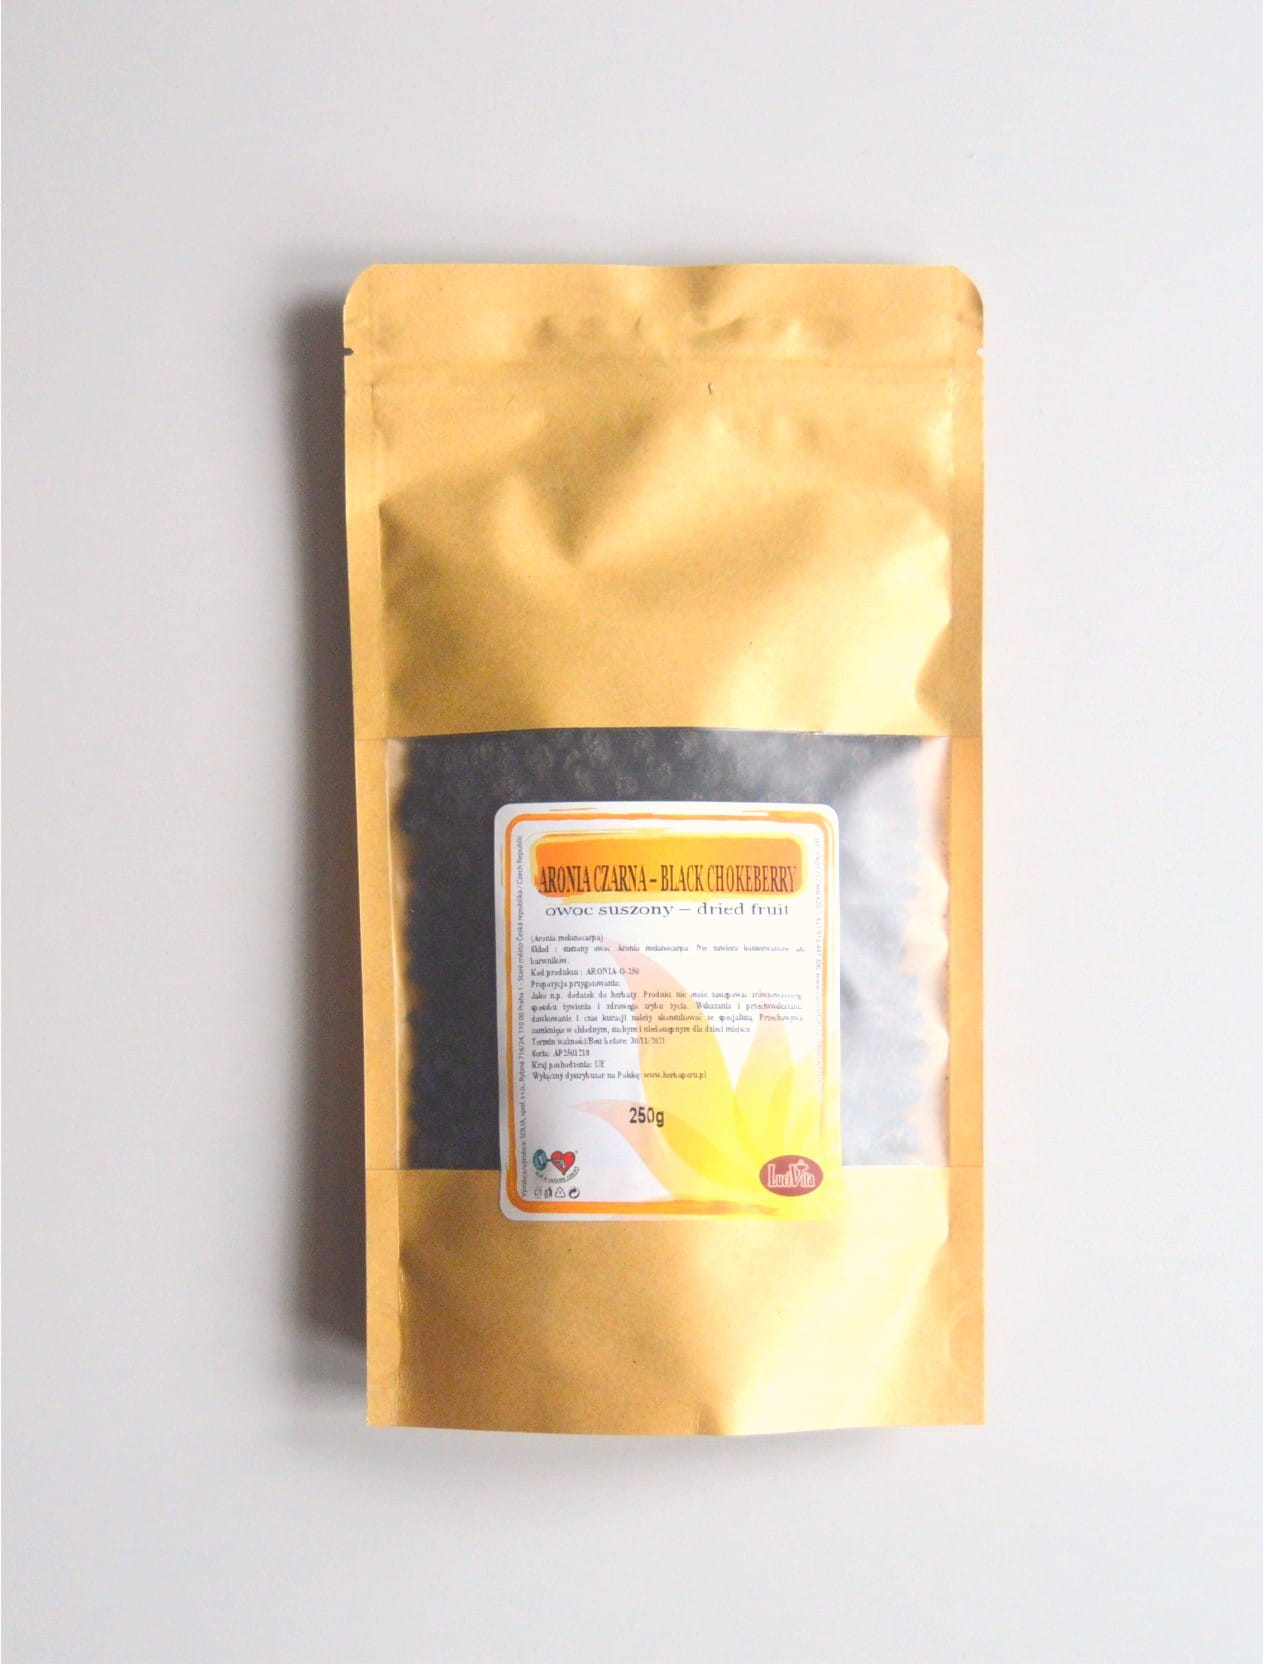 Black chokeberry - dried fruit - 250g